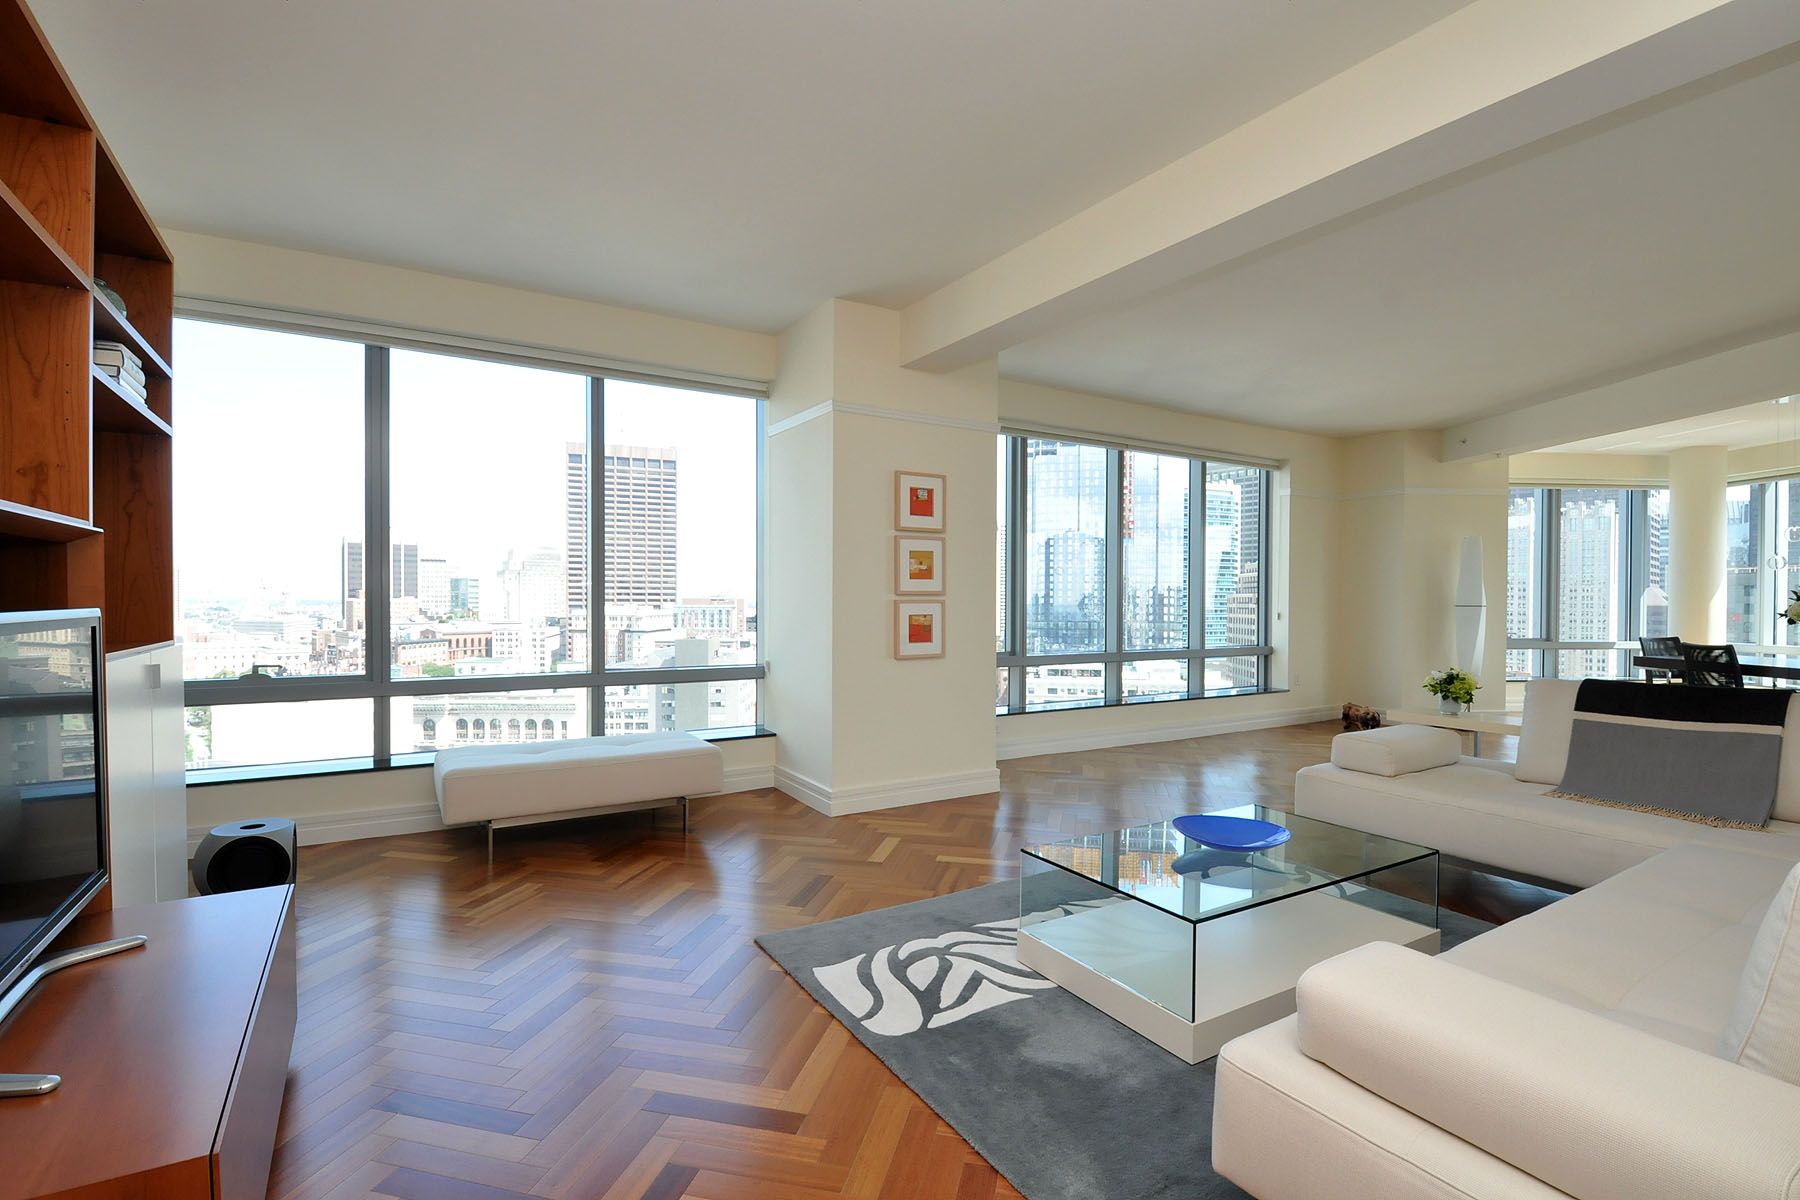 Condominium for Sale at Exquisite City Views 1 Avery Street Unit 24D Midtown, Boston, Massachusetts 02111 United States